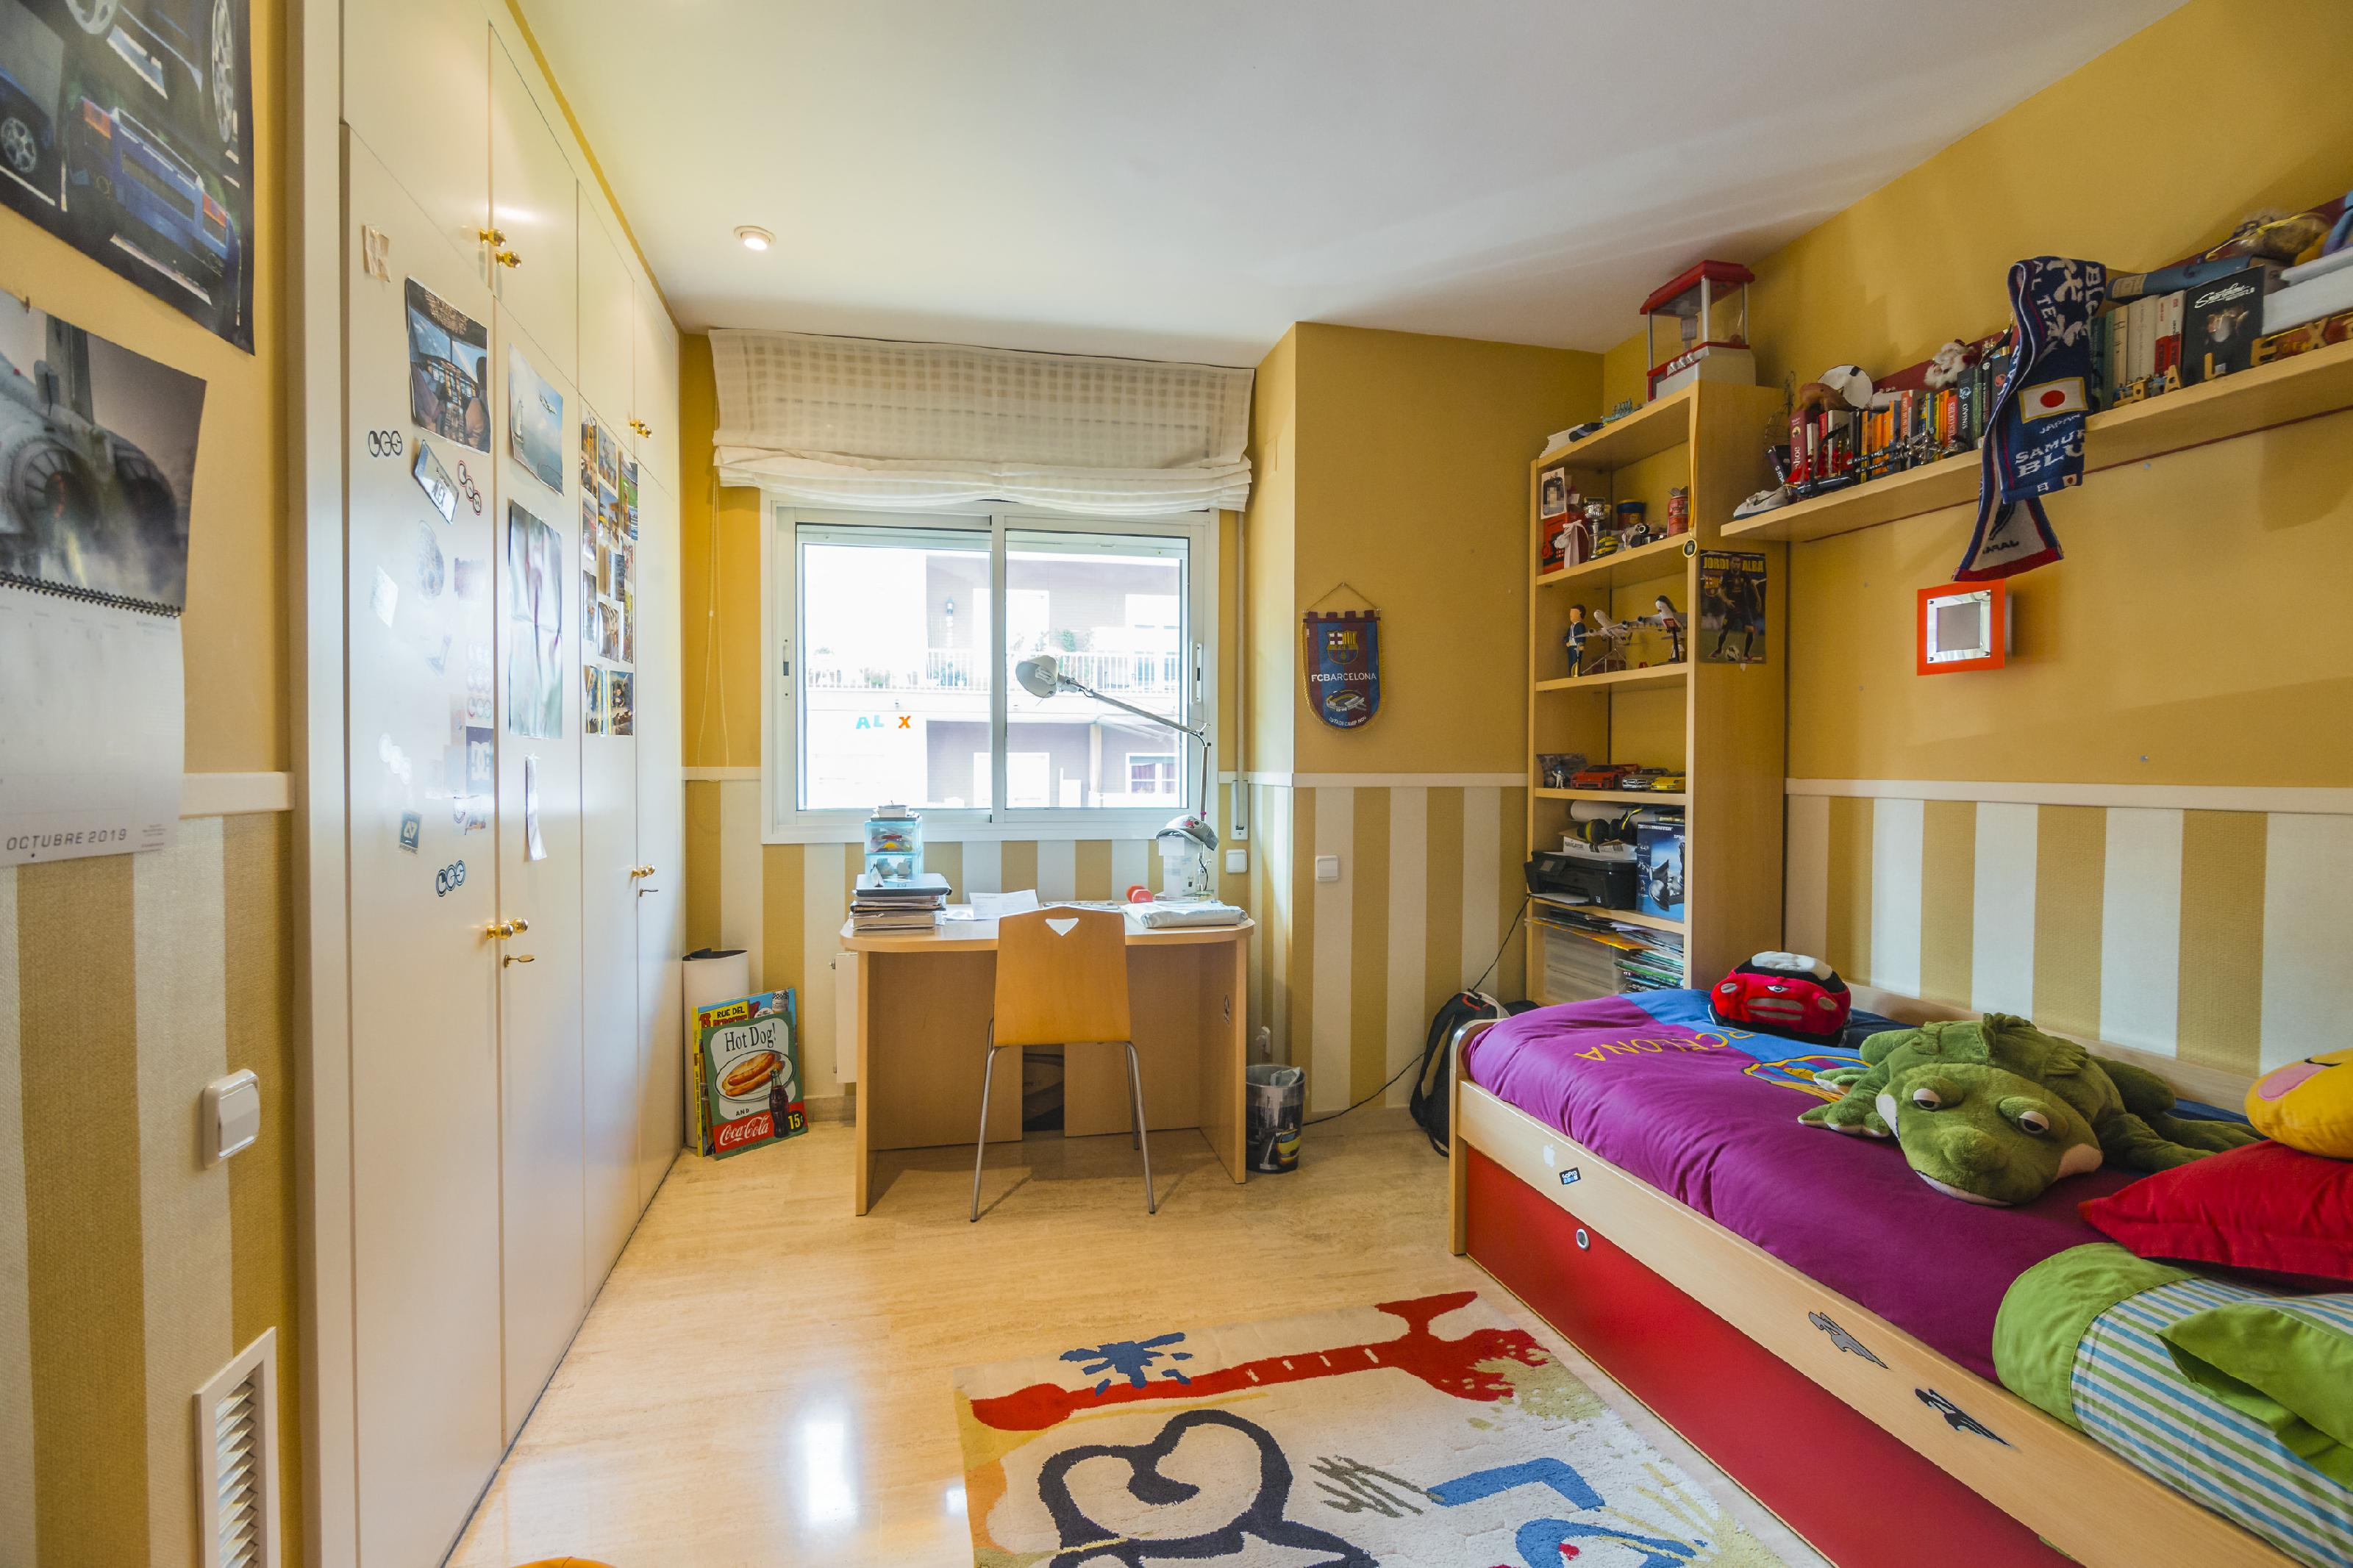 232637 Penthouse for sale in Sarrià-Sant Gervasi, Sant Gervasi-Galvany 14